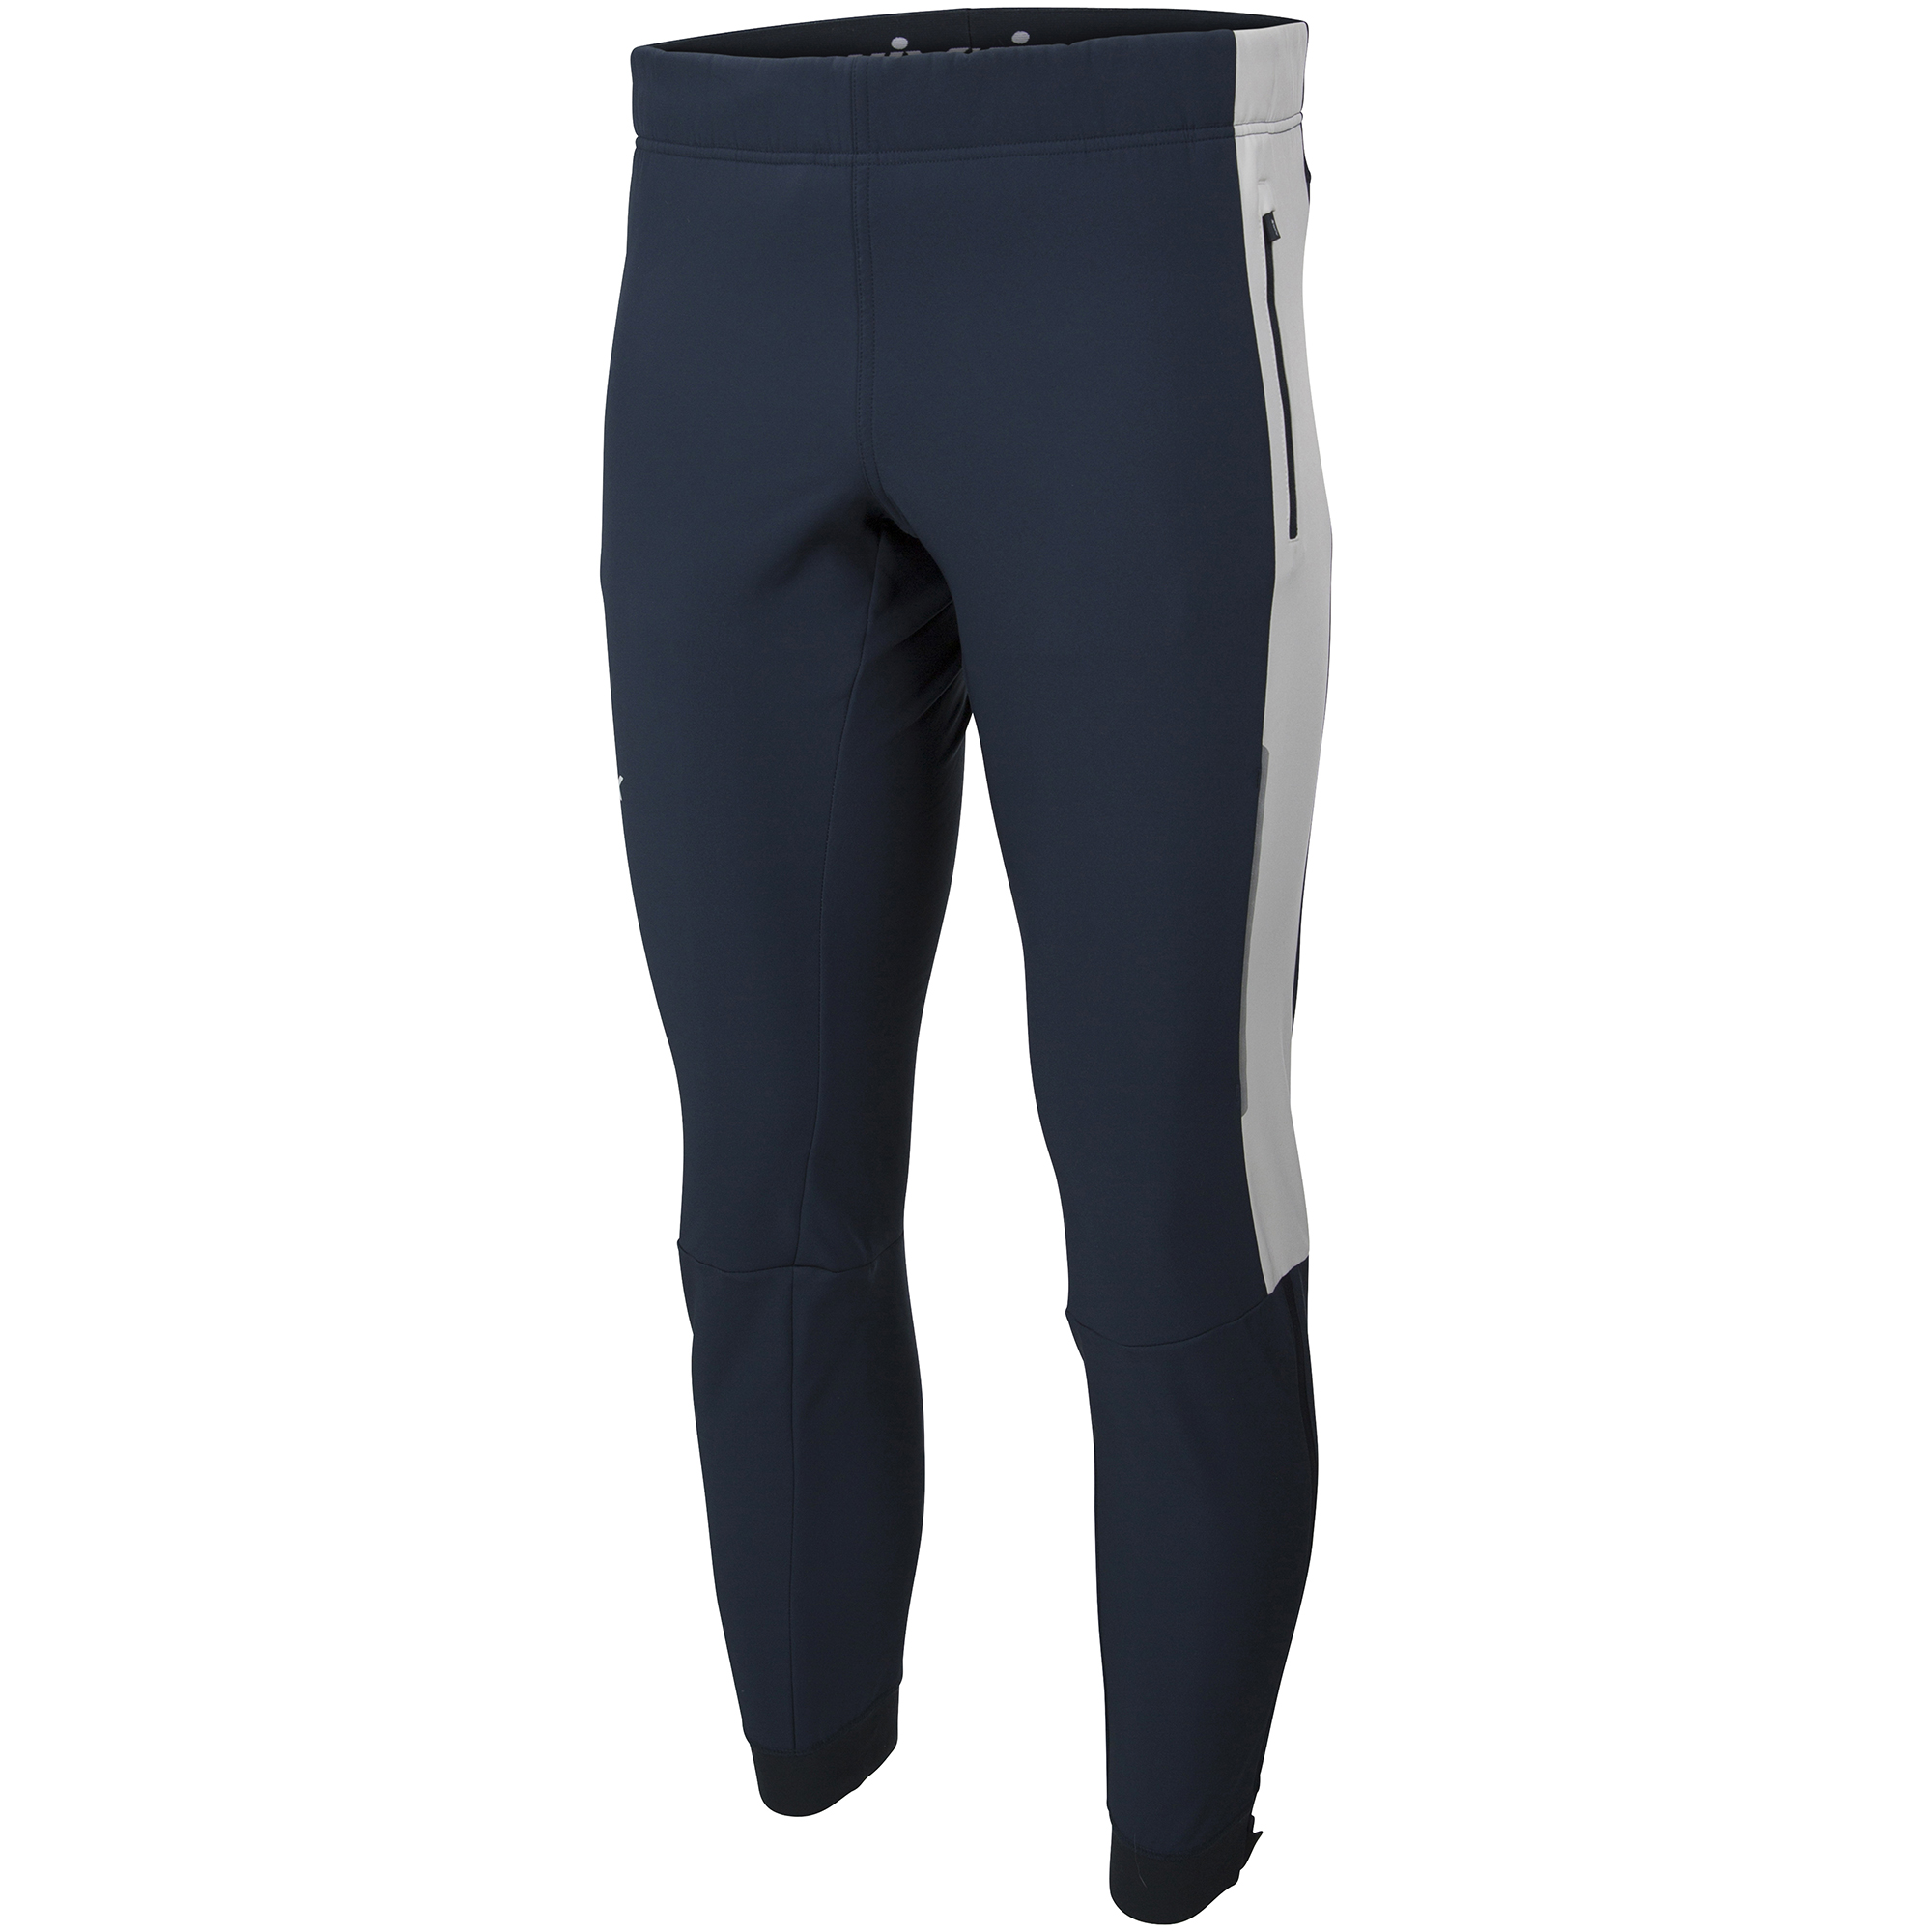 23591-75100-Strive pants M